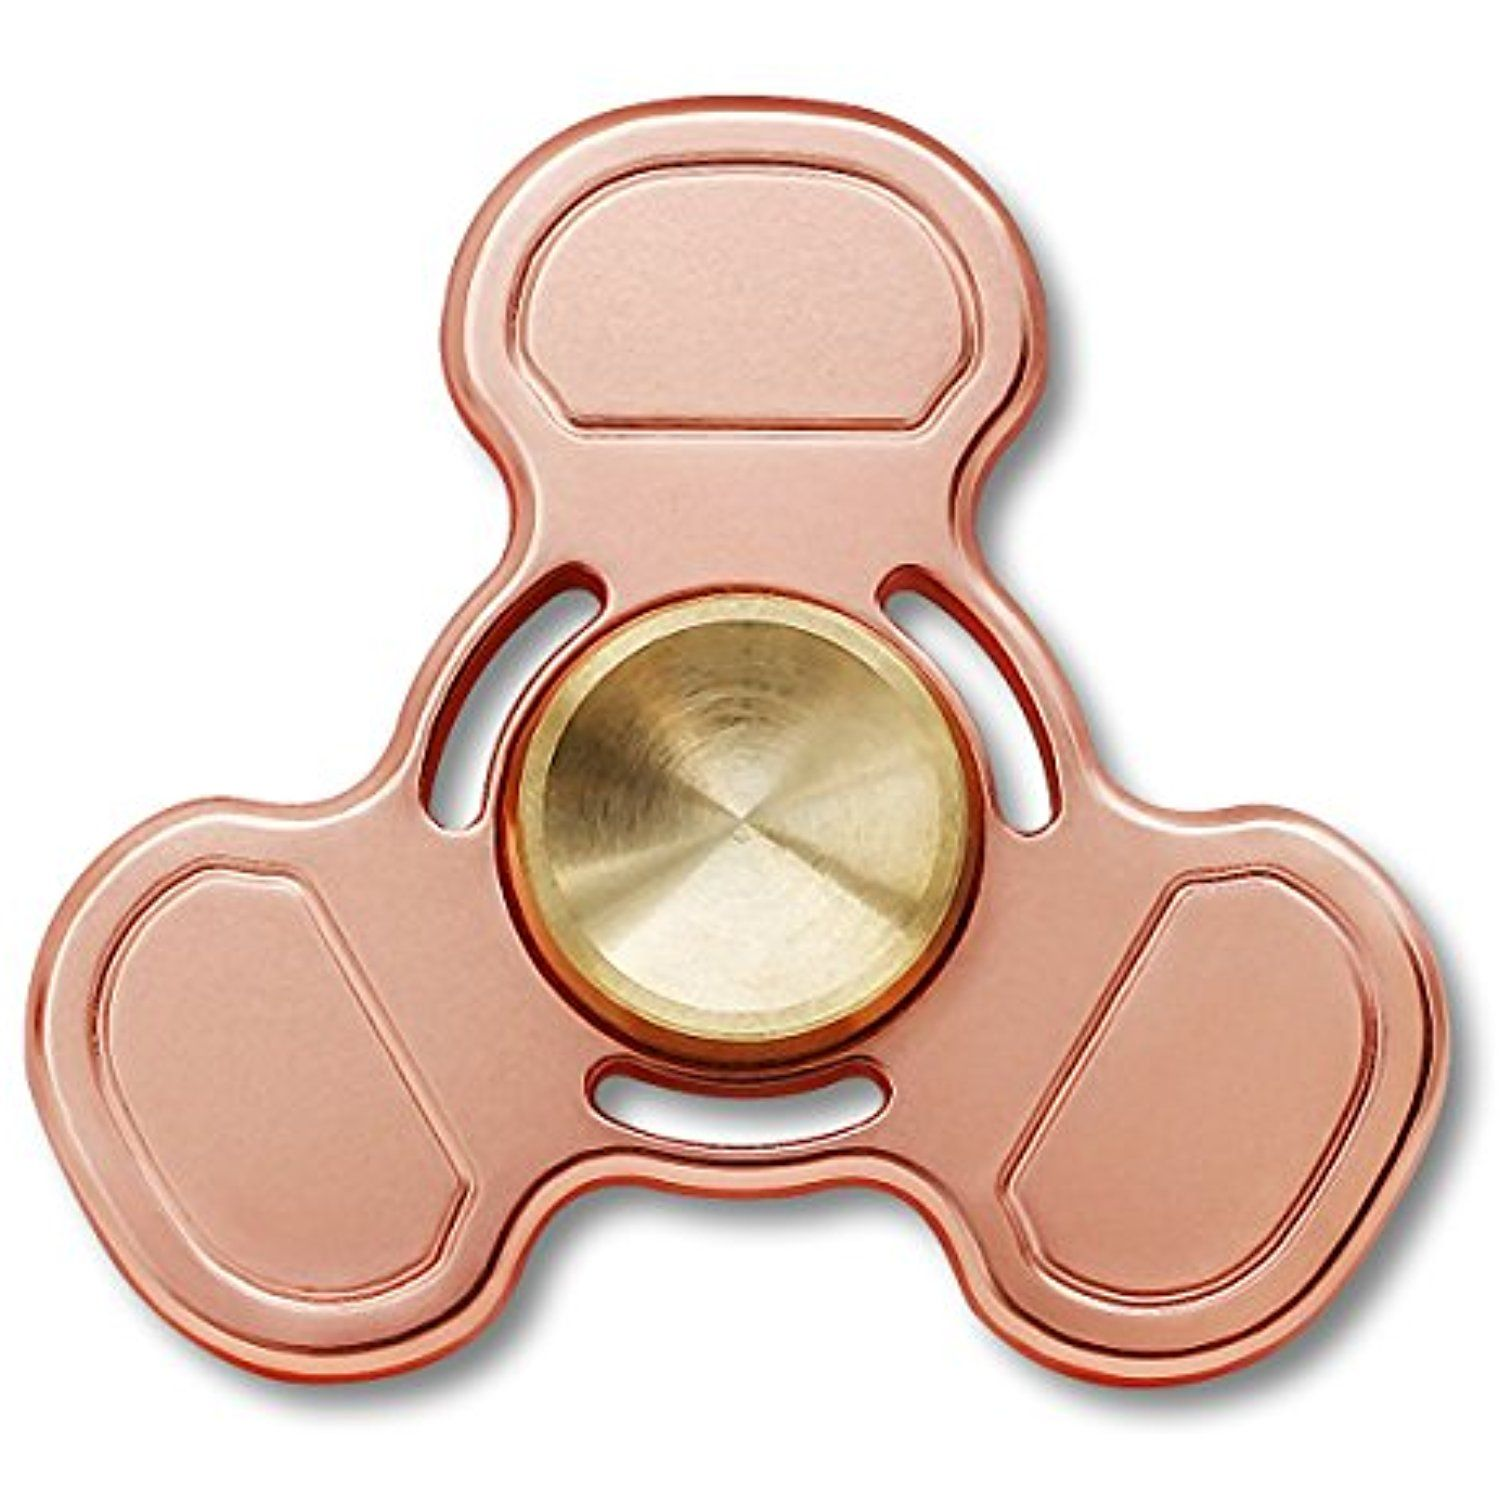 Fidget spinner novelty hand toys relieve stress and